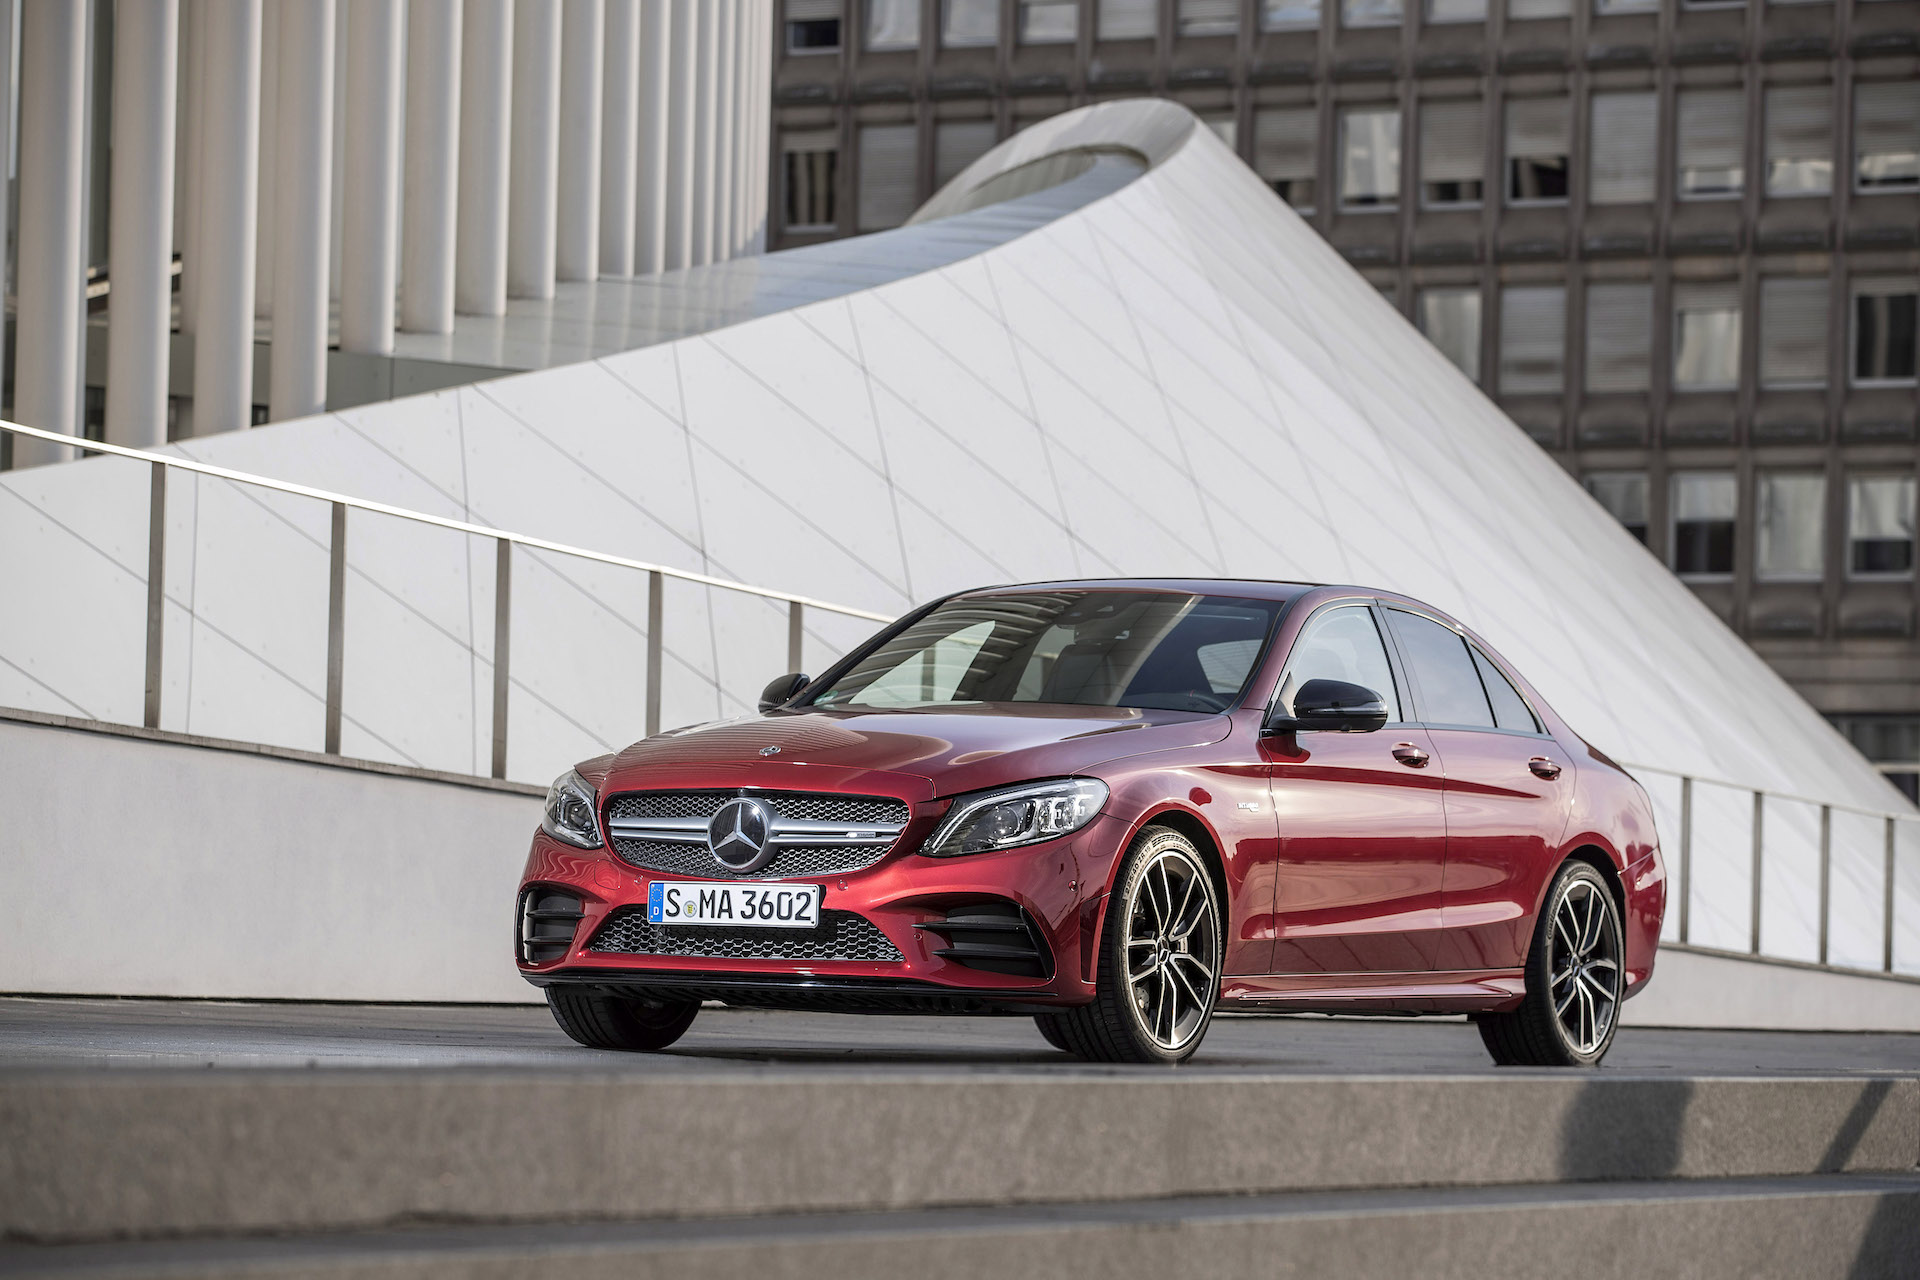 hight resolution of 2019 mercedes benz c300 and c43 first drive review subtle upgrades big safety